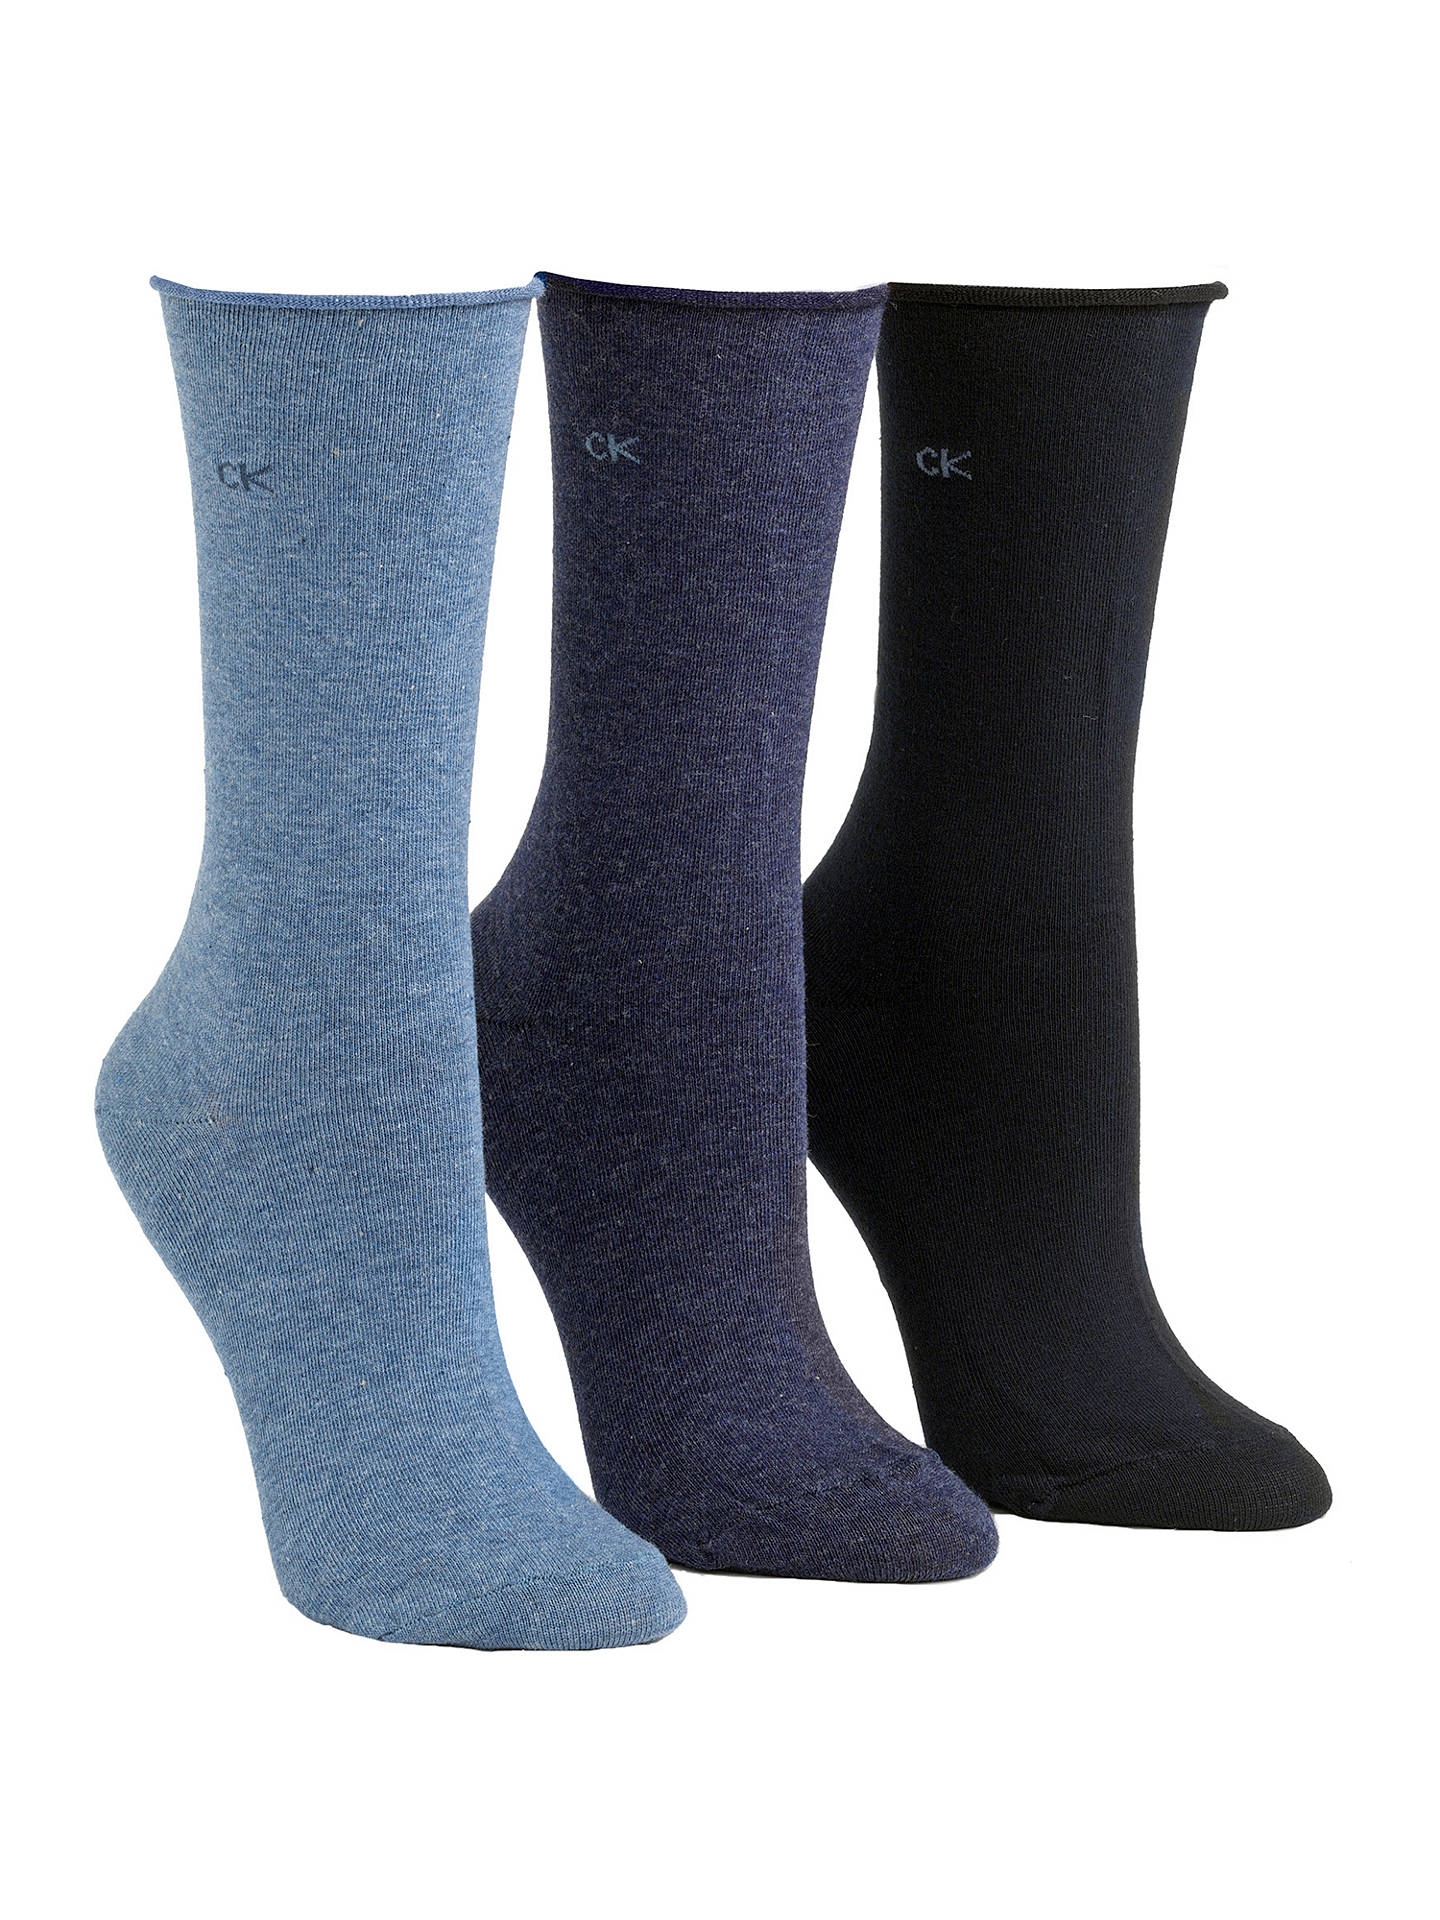 BuyCalvin Klein Roll Top Crew Socks, Pack of 3, Denim/Navy Online at johnlewis.com